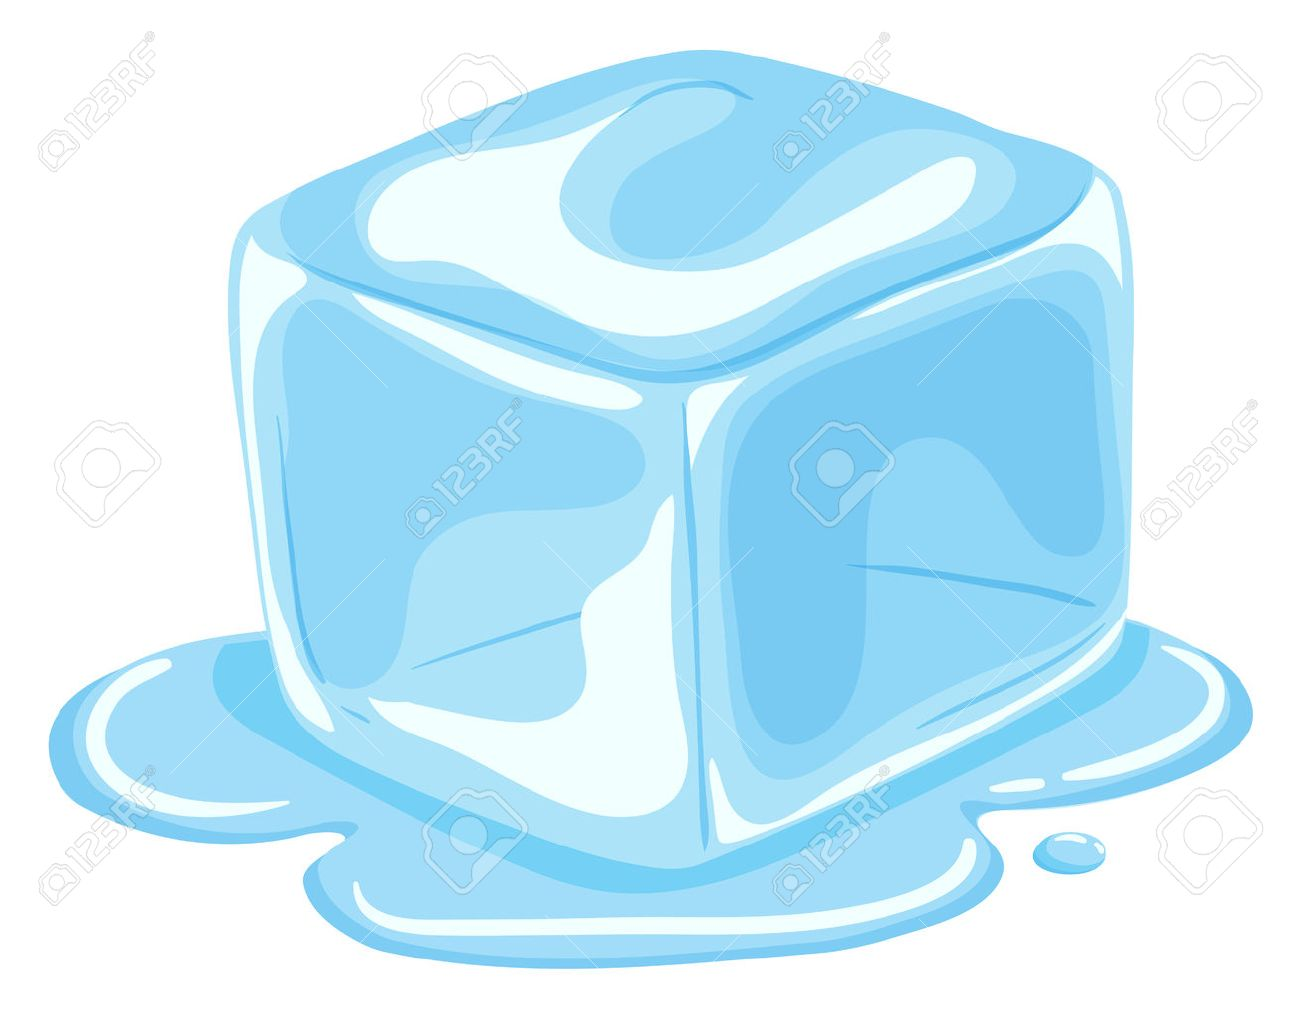 Hielo clipart images gallery for Free Download, Transparent.